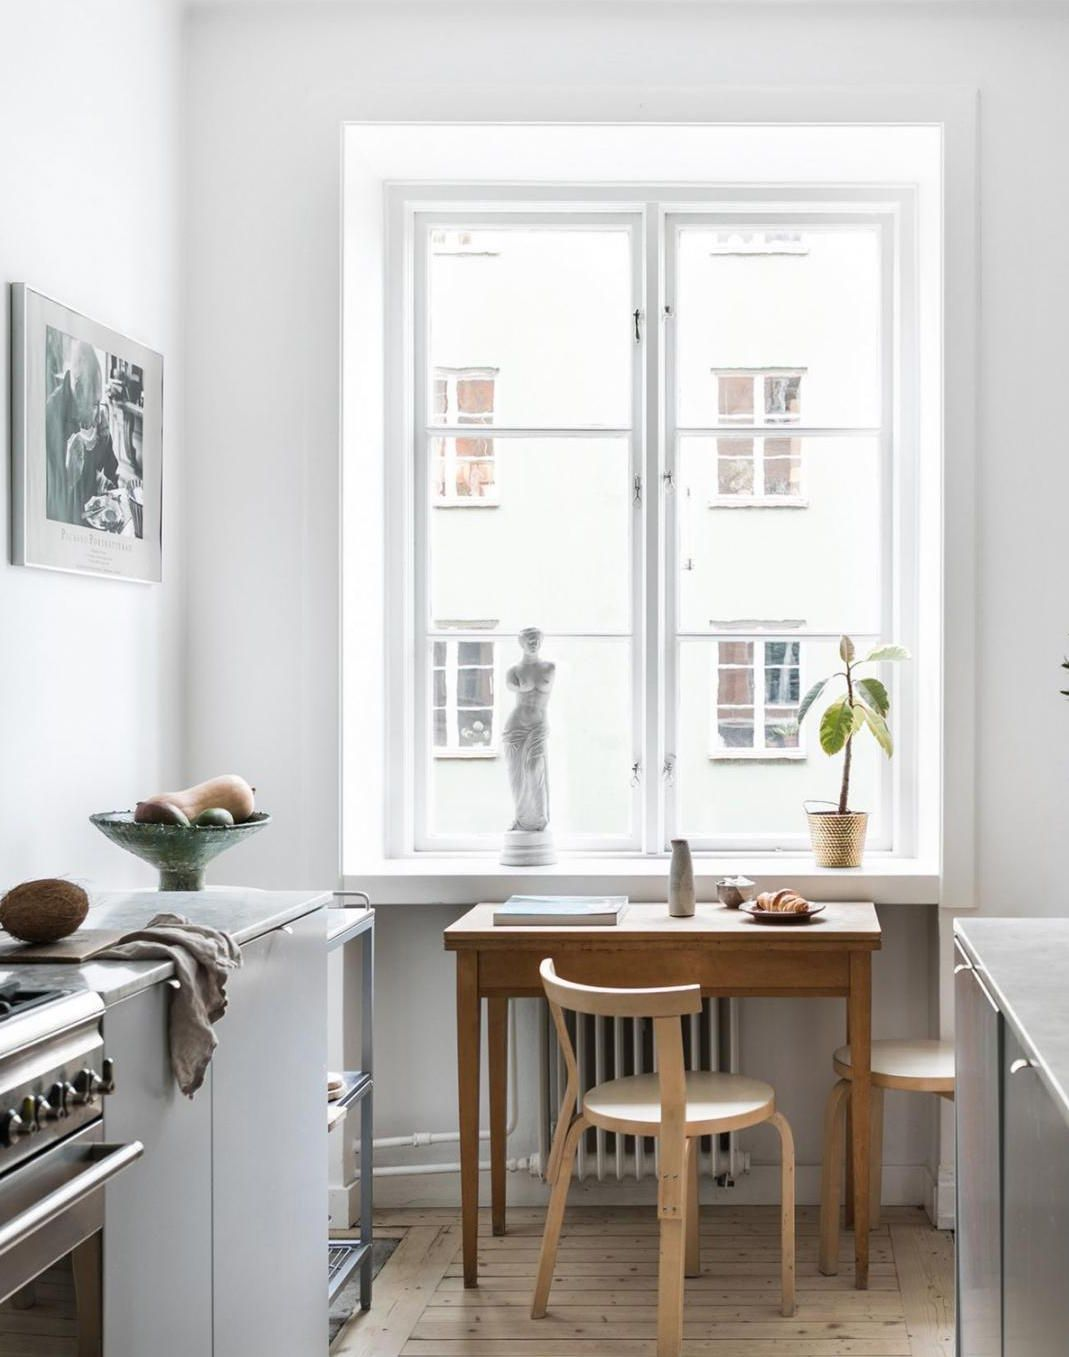 Separated kitchen and living room | Pinterest | Living rooms ...